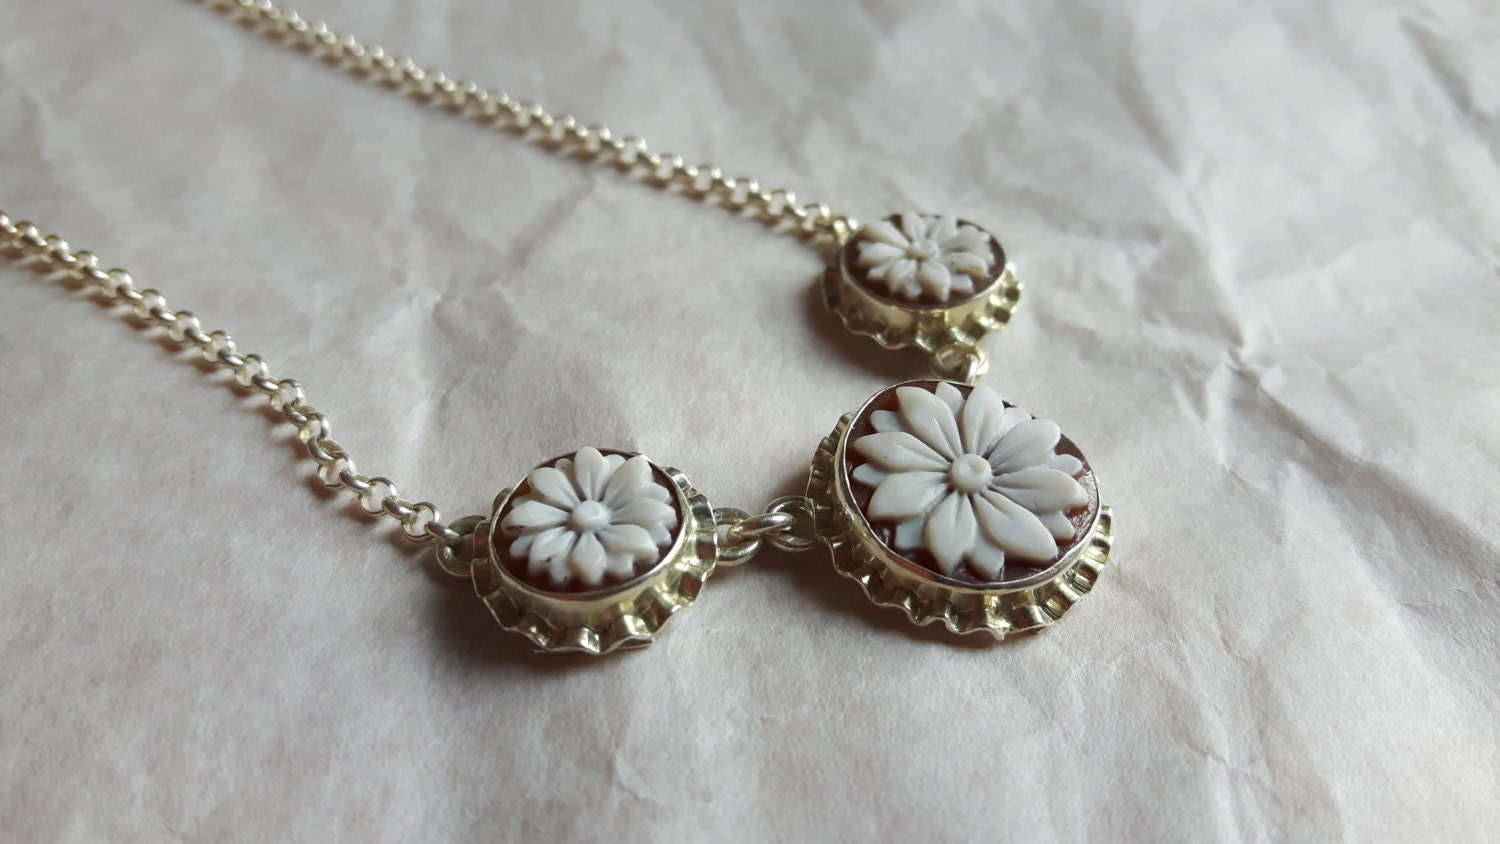 Shell cameos necklace 3 flowers italian cameo jewelry donadio description shell cameos necklace aloadofball Image collections